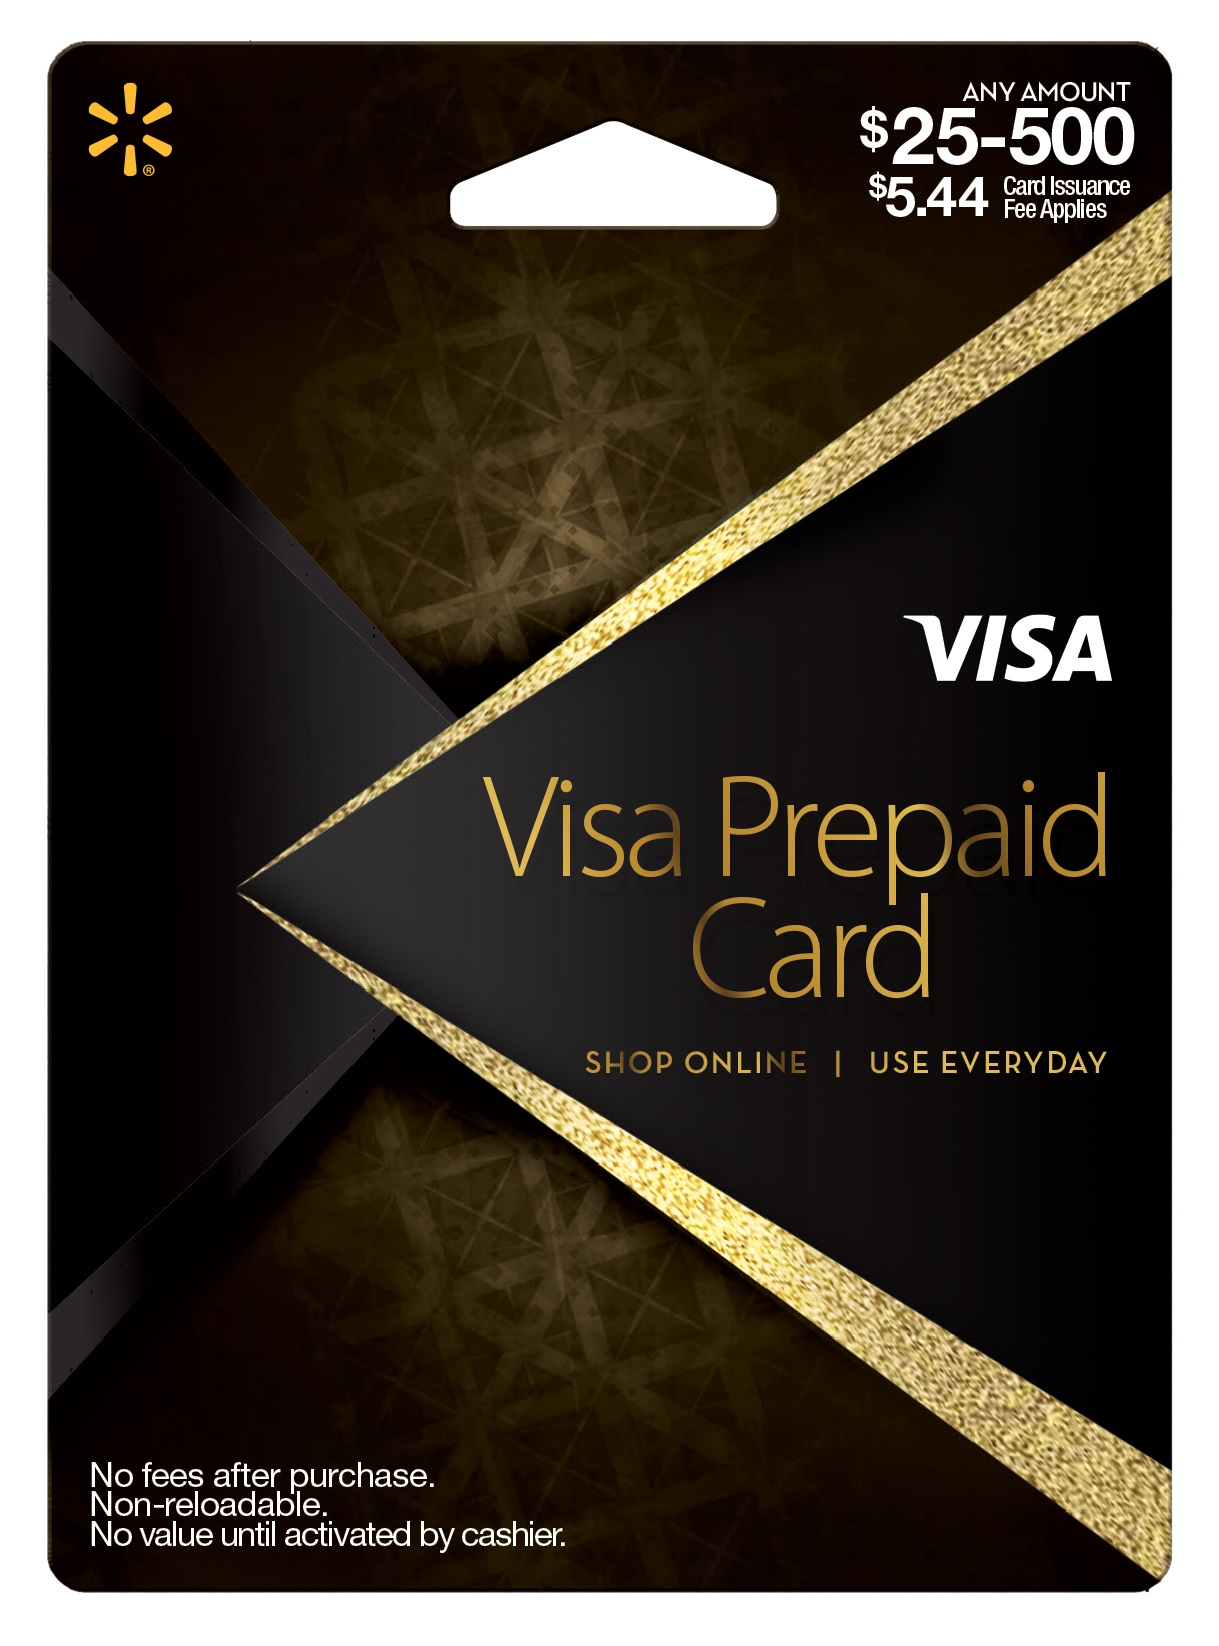 Visa Giftcard Walmart Everyday Visa Spend - Walmart.com